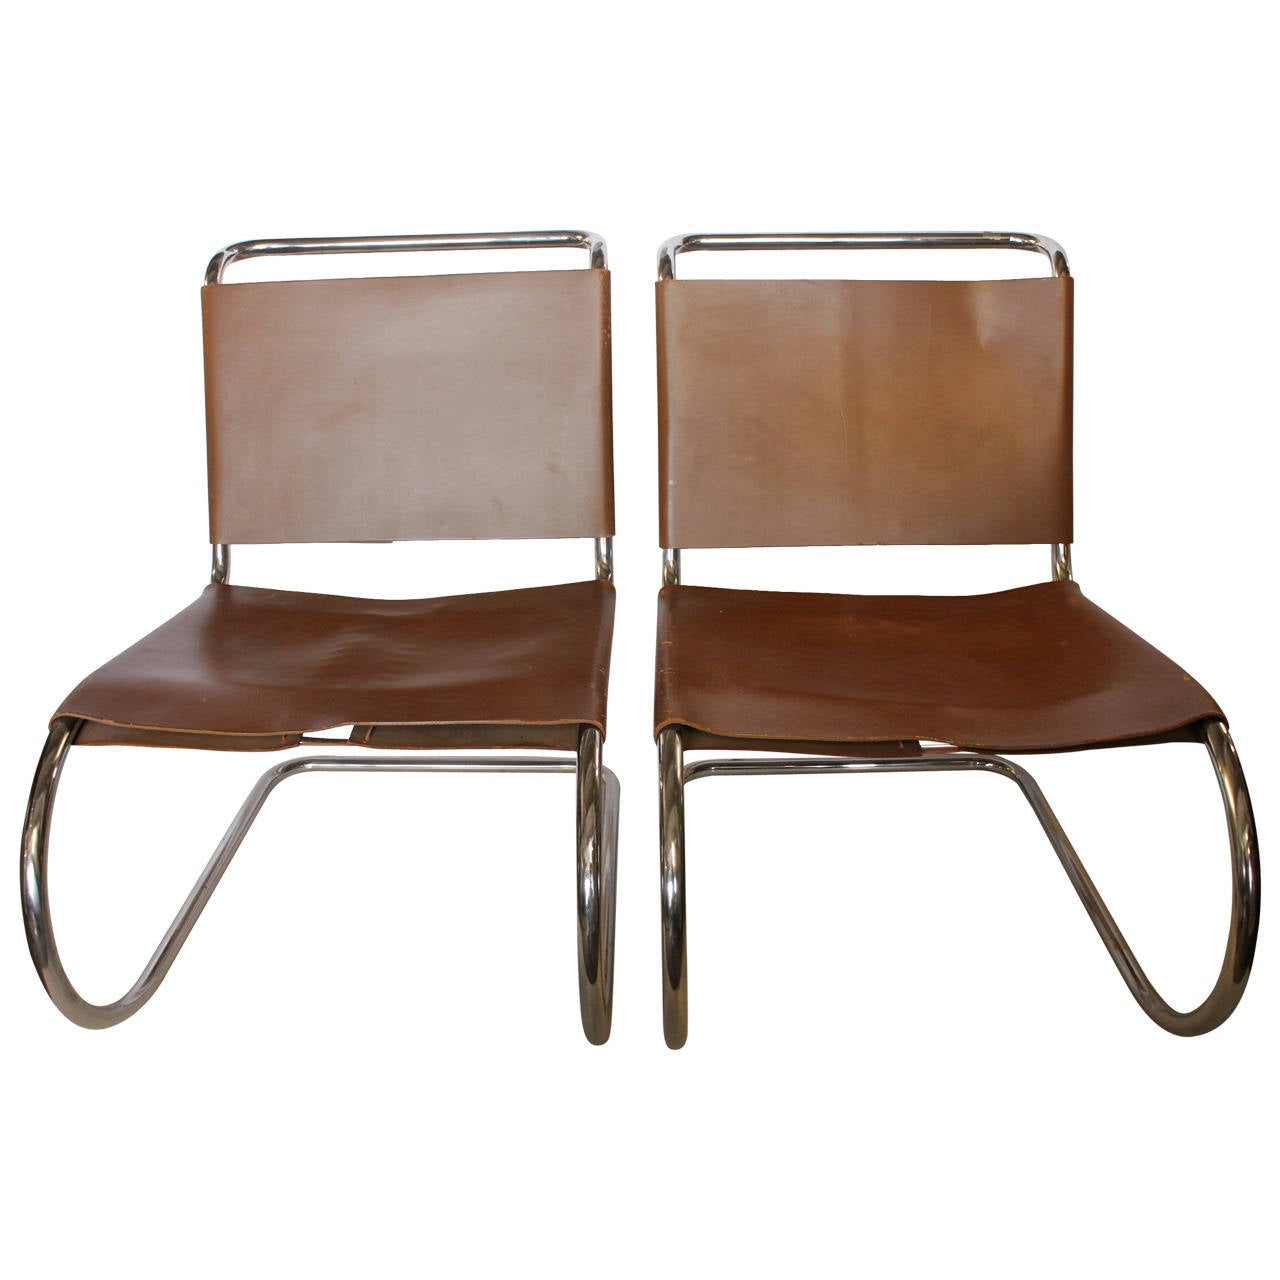 1950s MR Lounge Chairs By Mies Van Der Rohe At 1stdibs